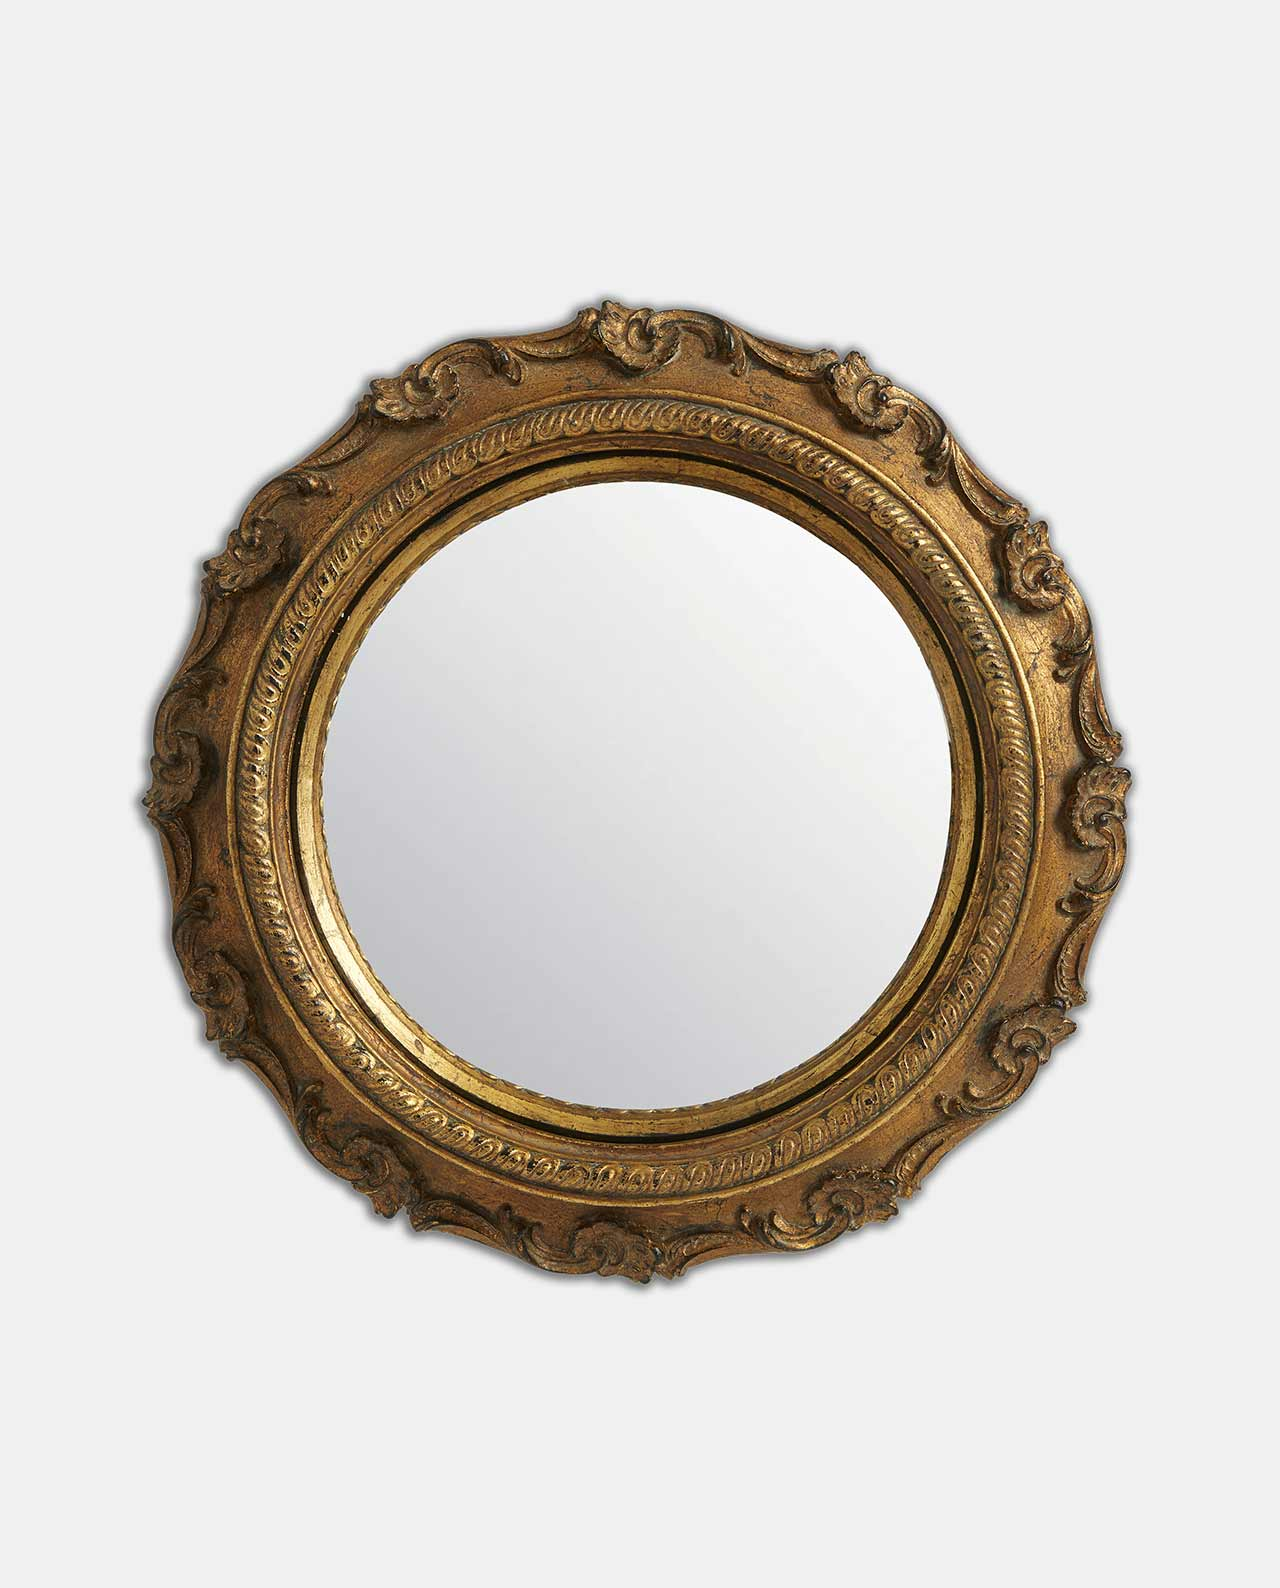 Gold Decorative Round Convex Mirror 25cm